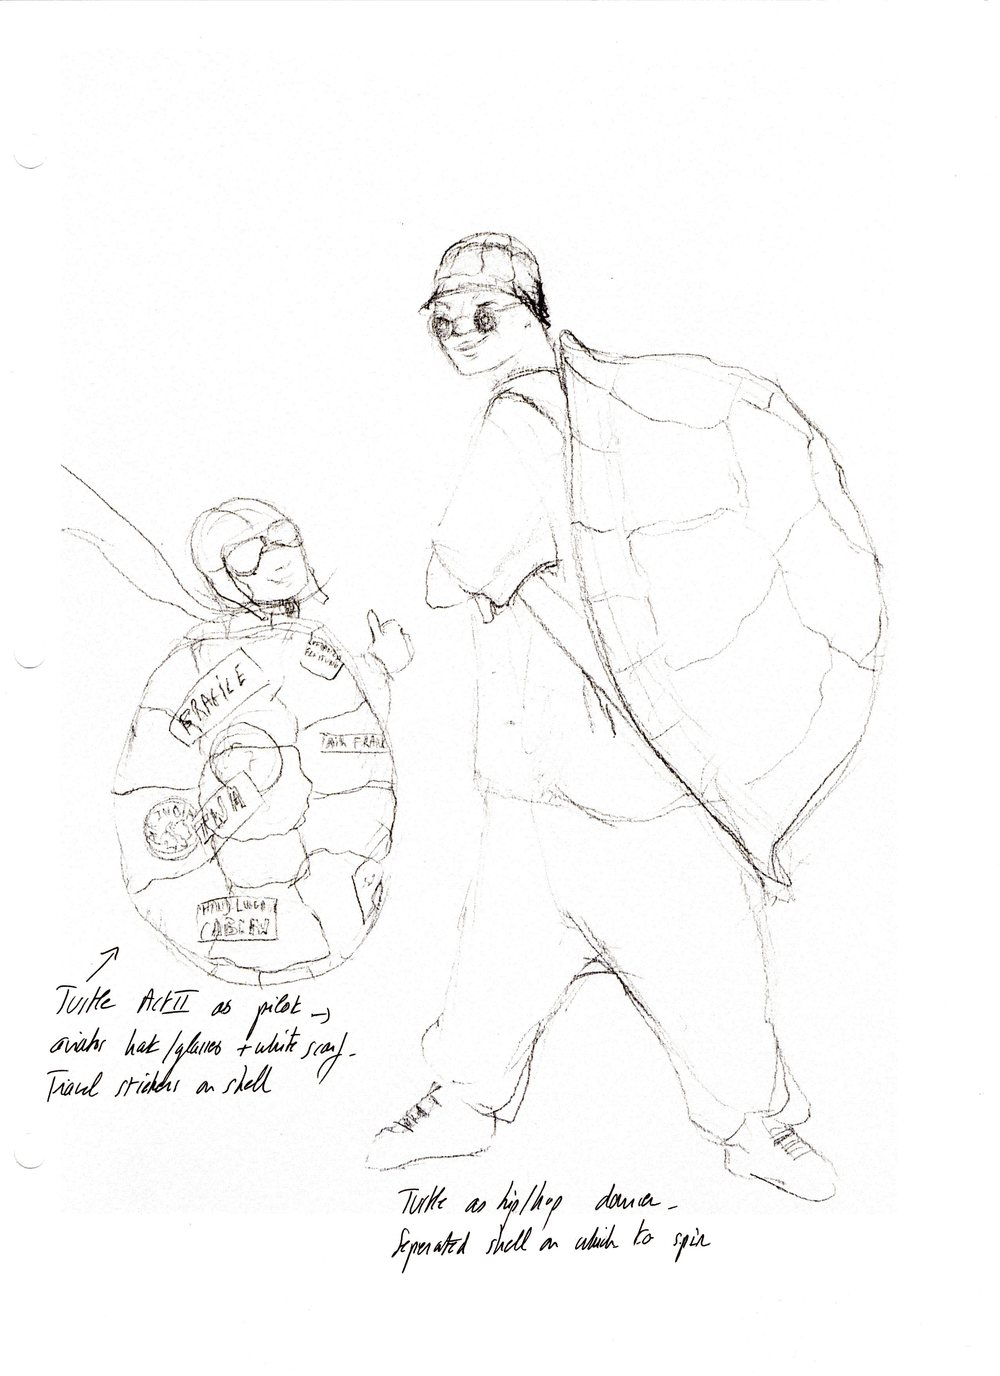 turtle act 1 sketch.jpg